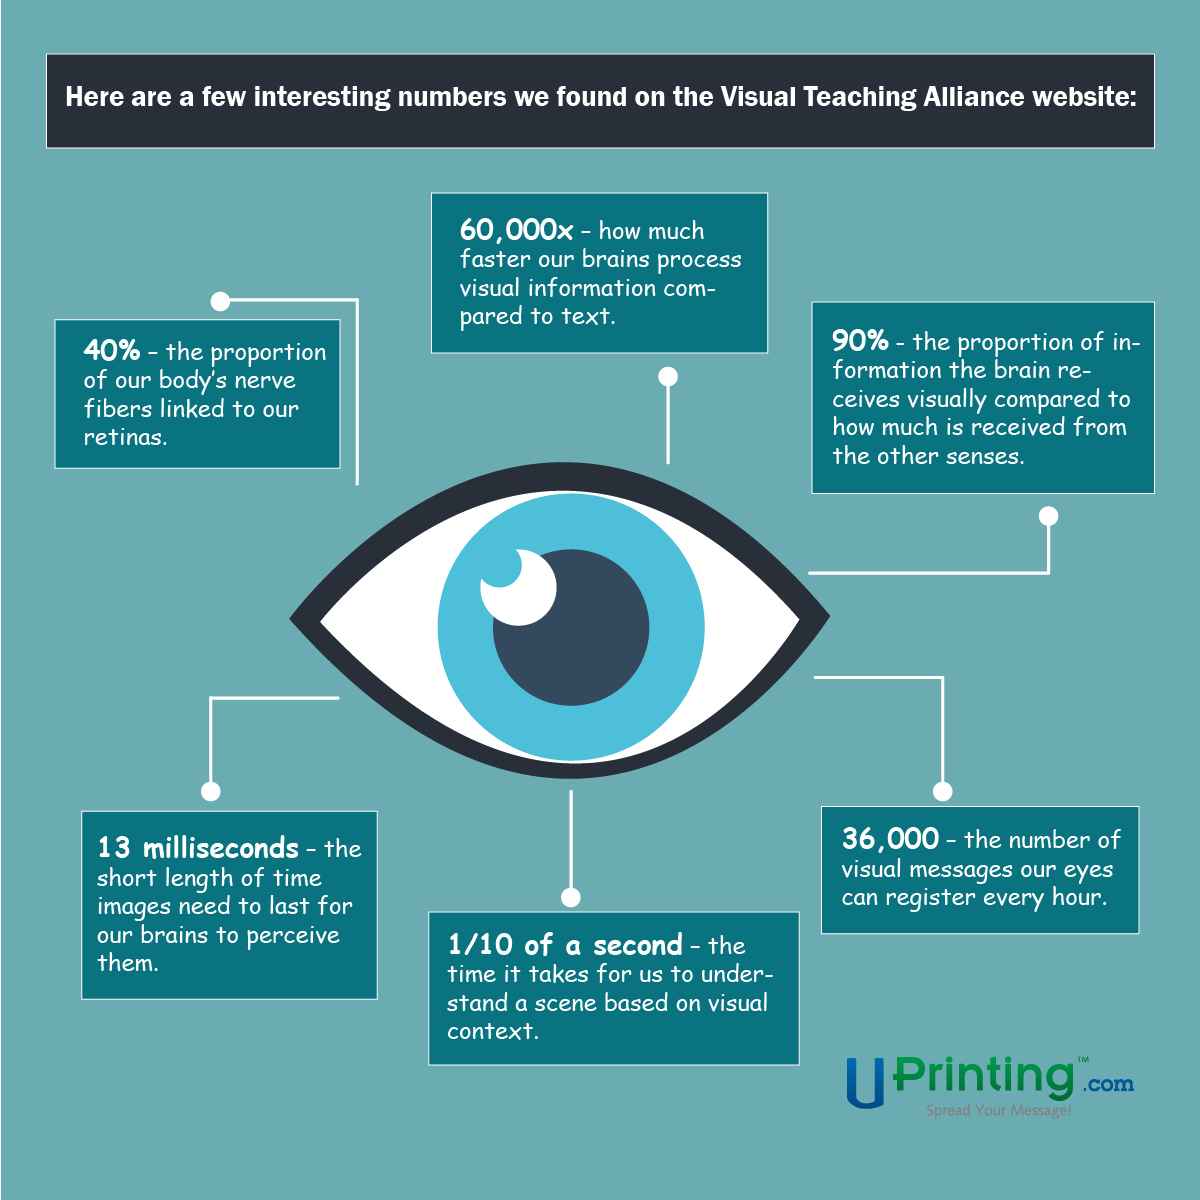 Vision facts graphic - effective visual motifs